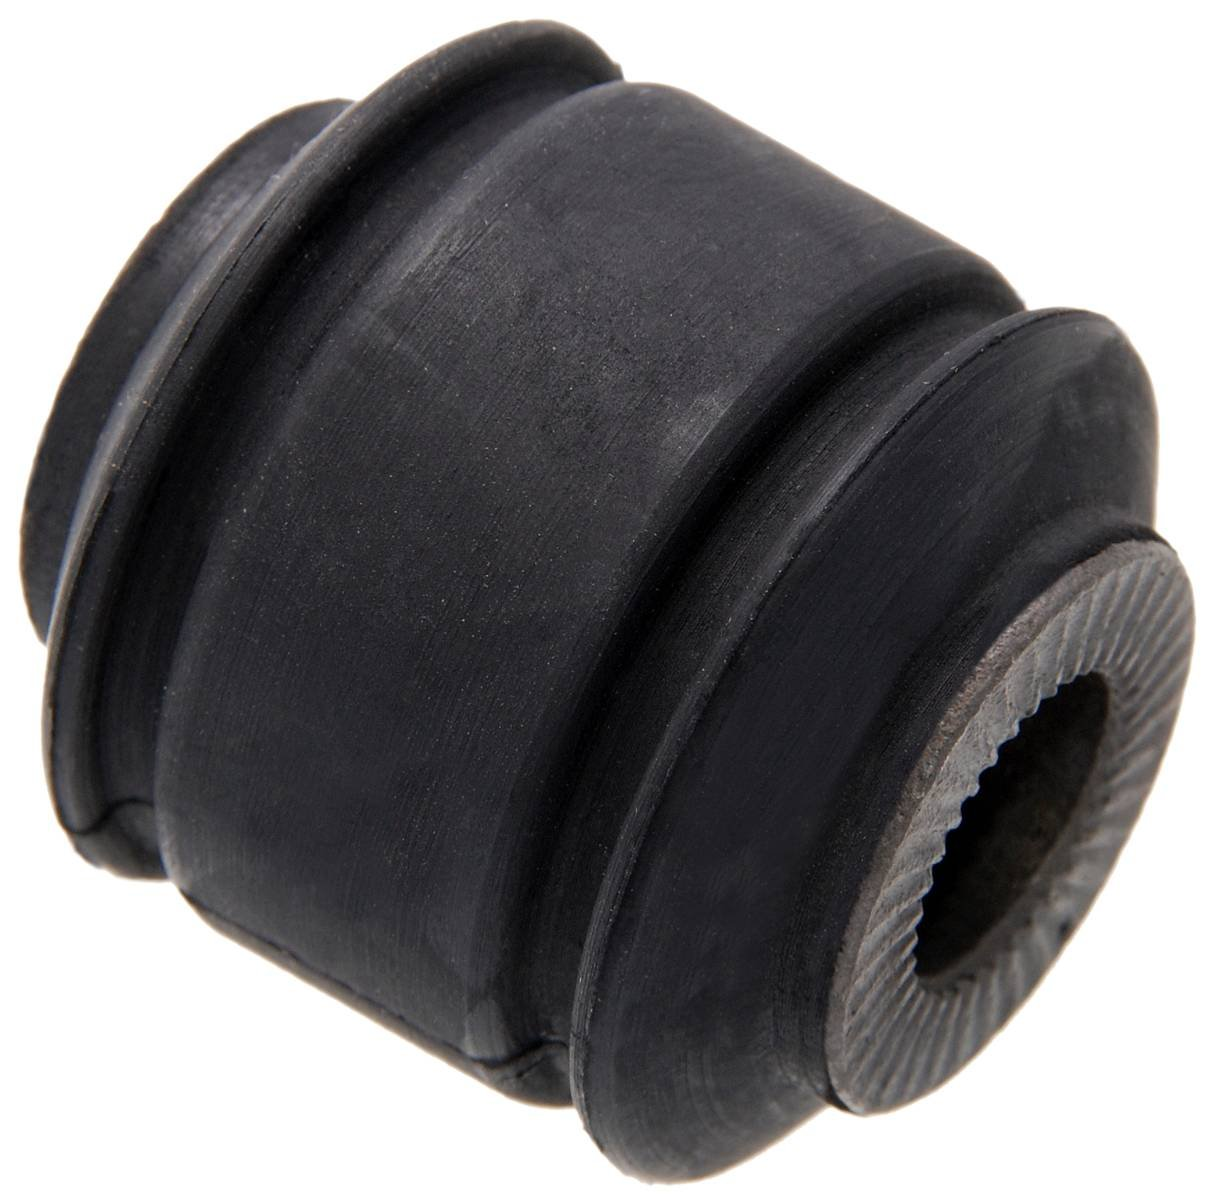 Nissan - Arm Bushing Front Shock Absorber - Oem: 56219-5X00A